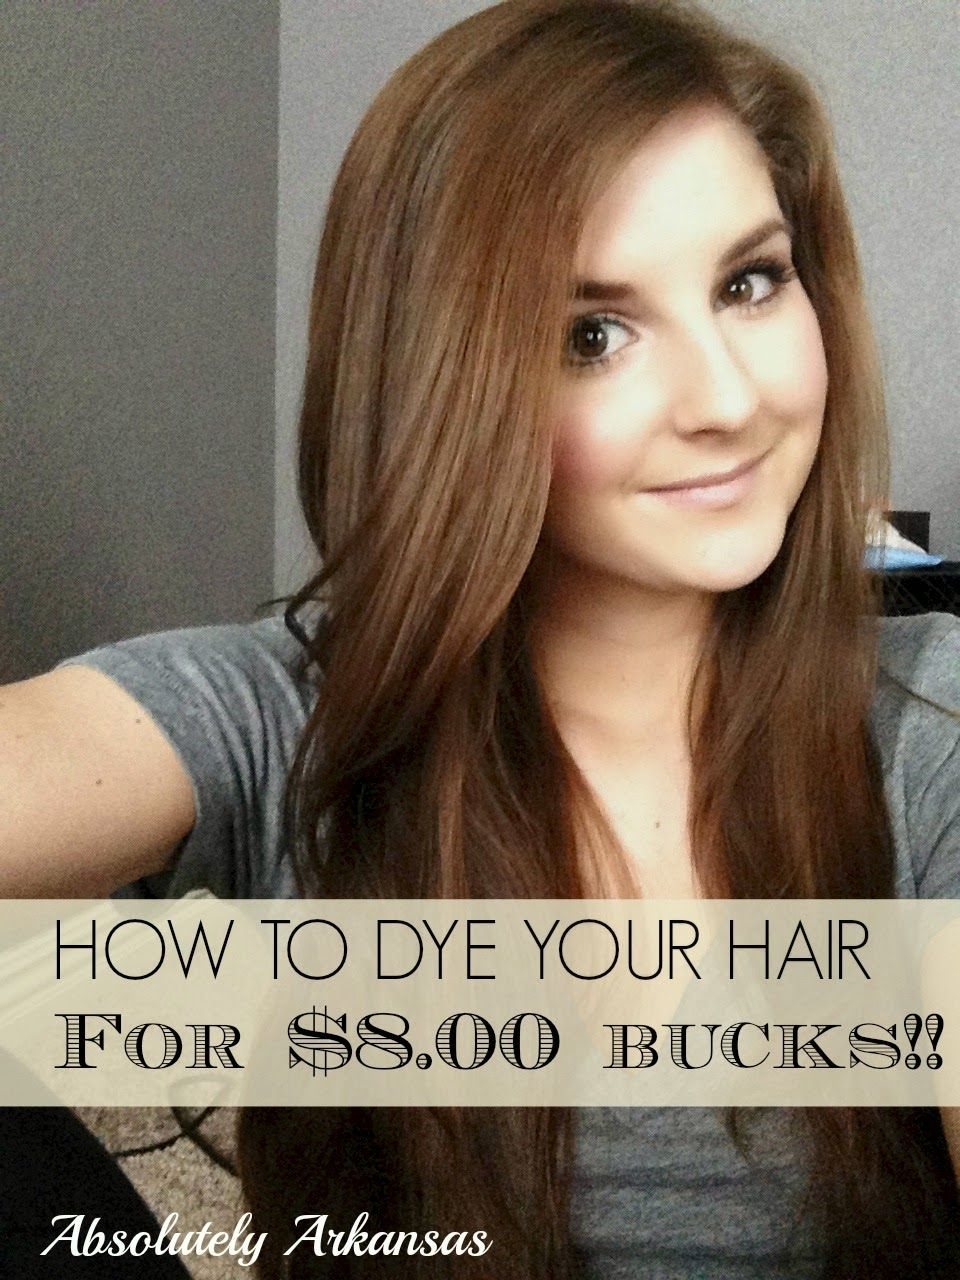 Absolutely Arkansas Dying Your Own Hair At Home For Eight Bucks